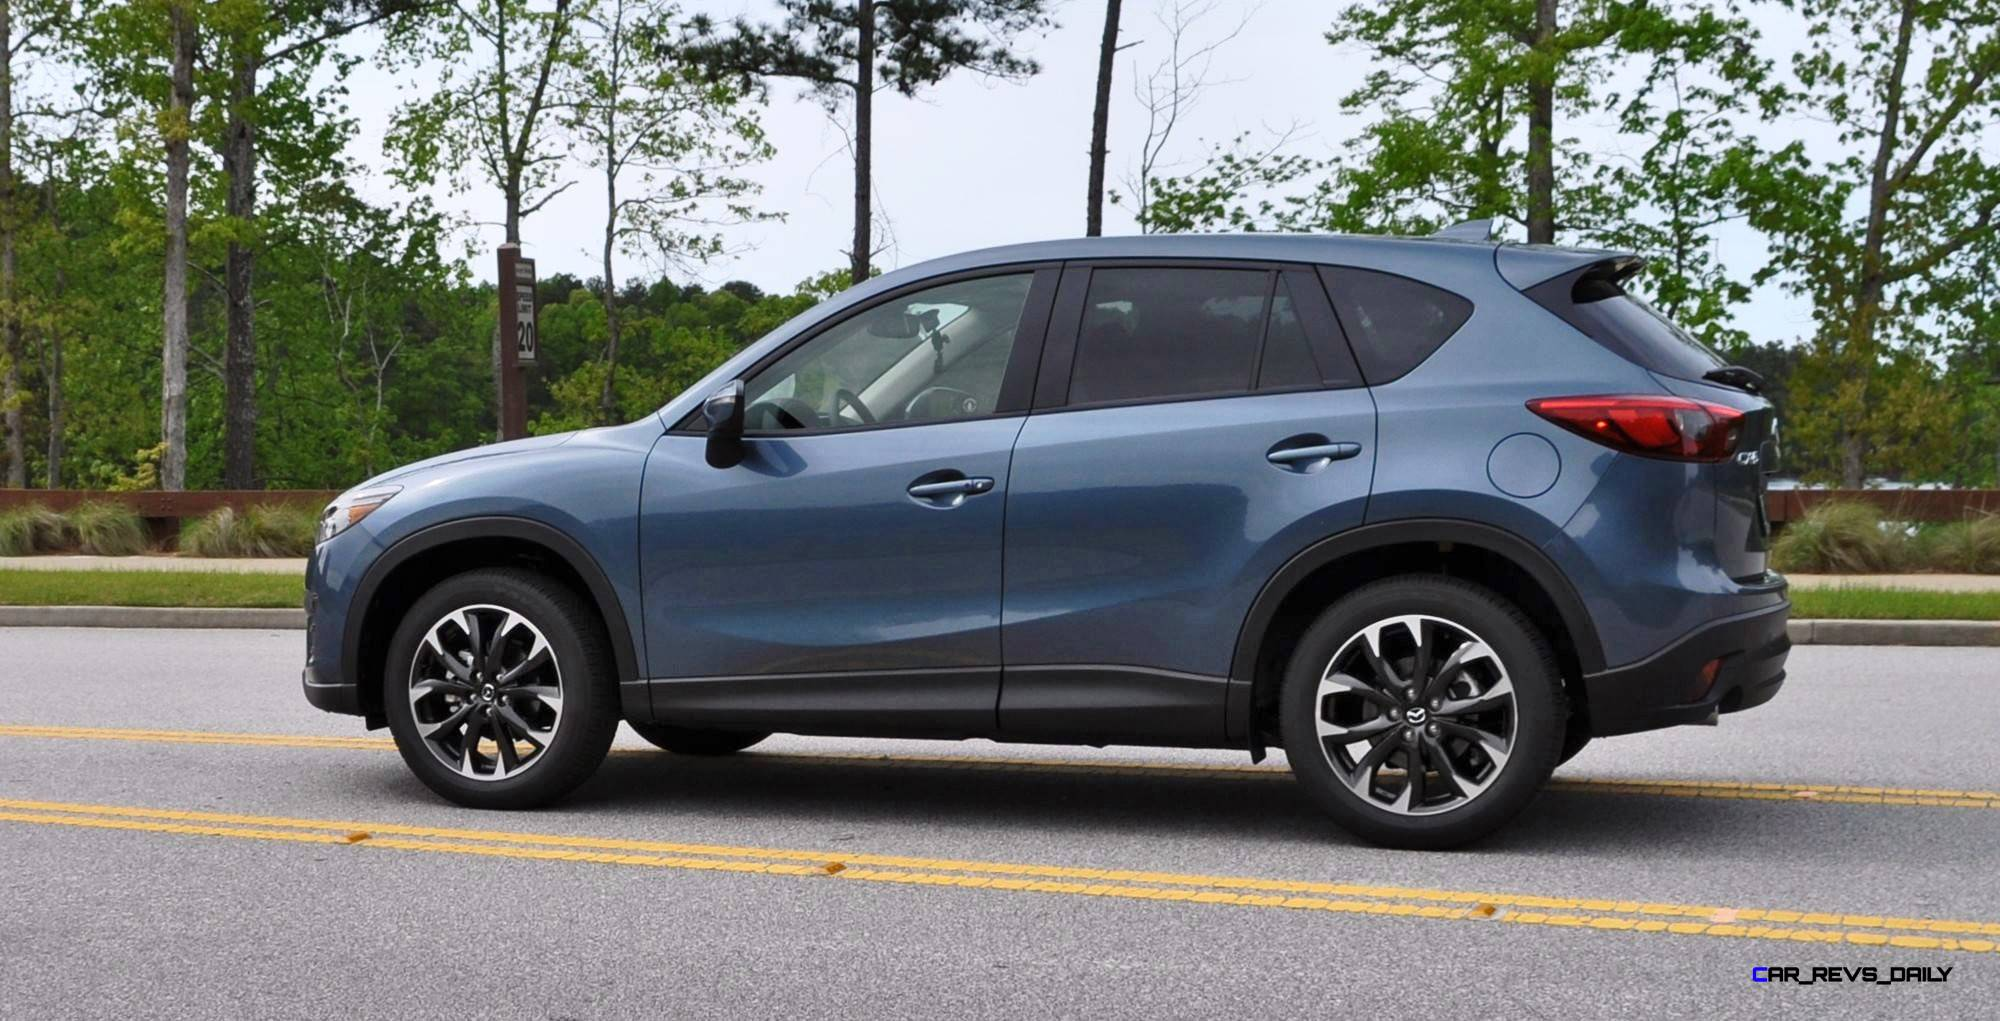 2016 Mazda Cx 5 Safety Review And Crash Test Ratings ...